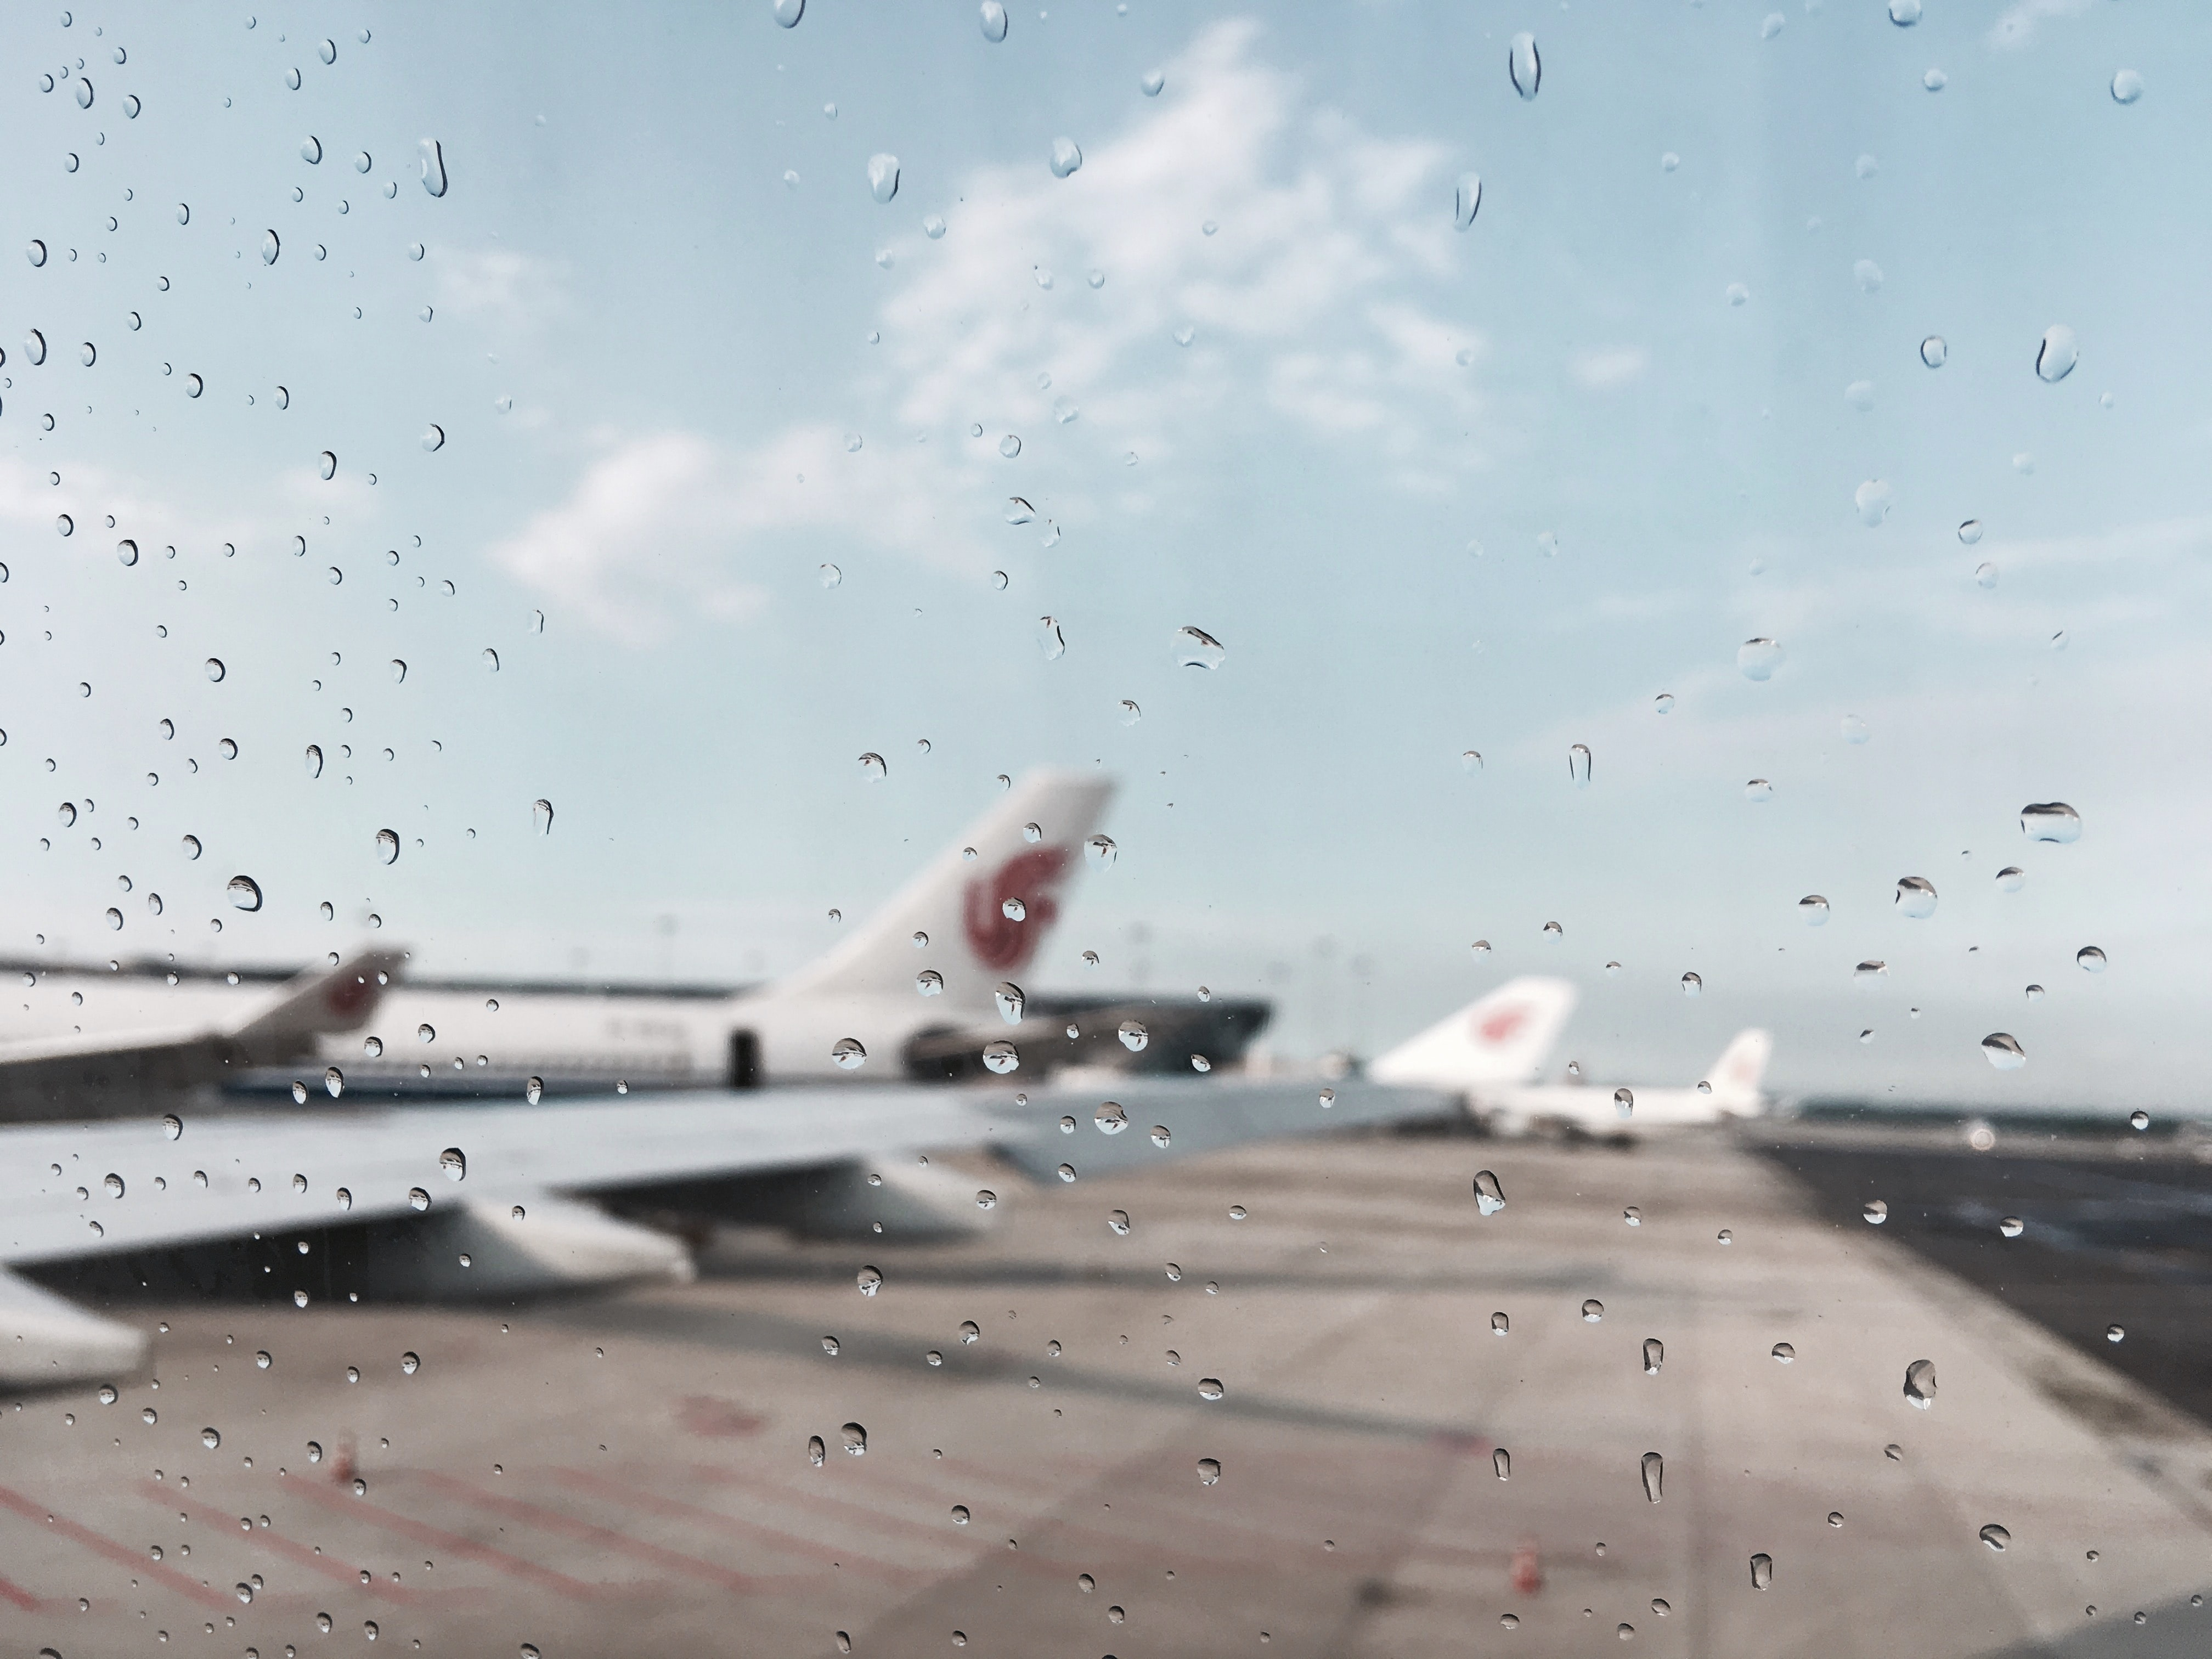 Planes at an airport, taken with a rain covered camera.